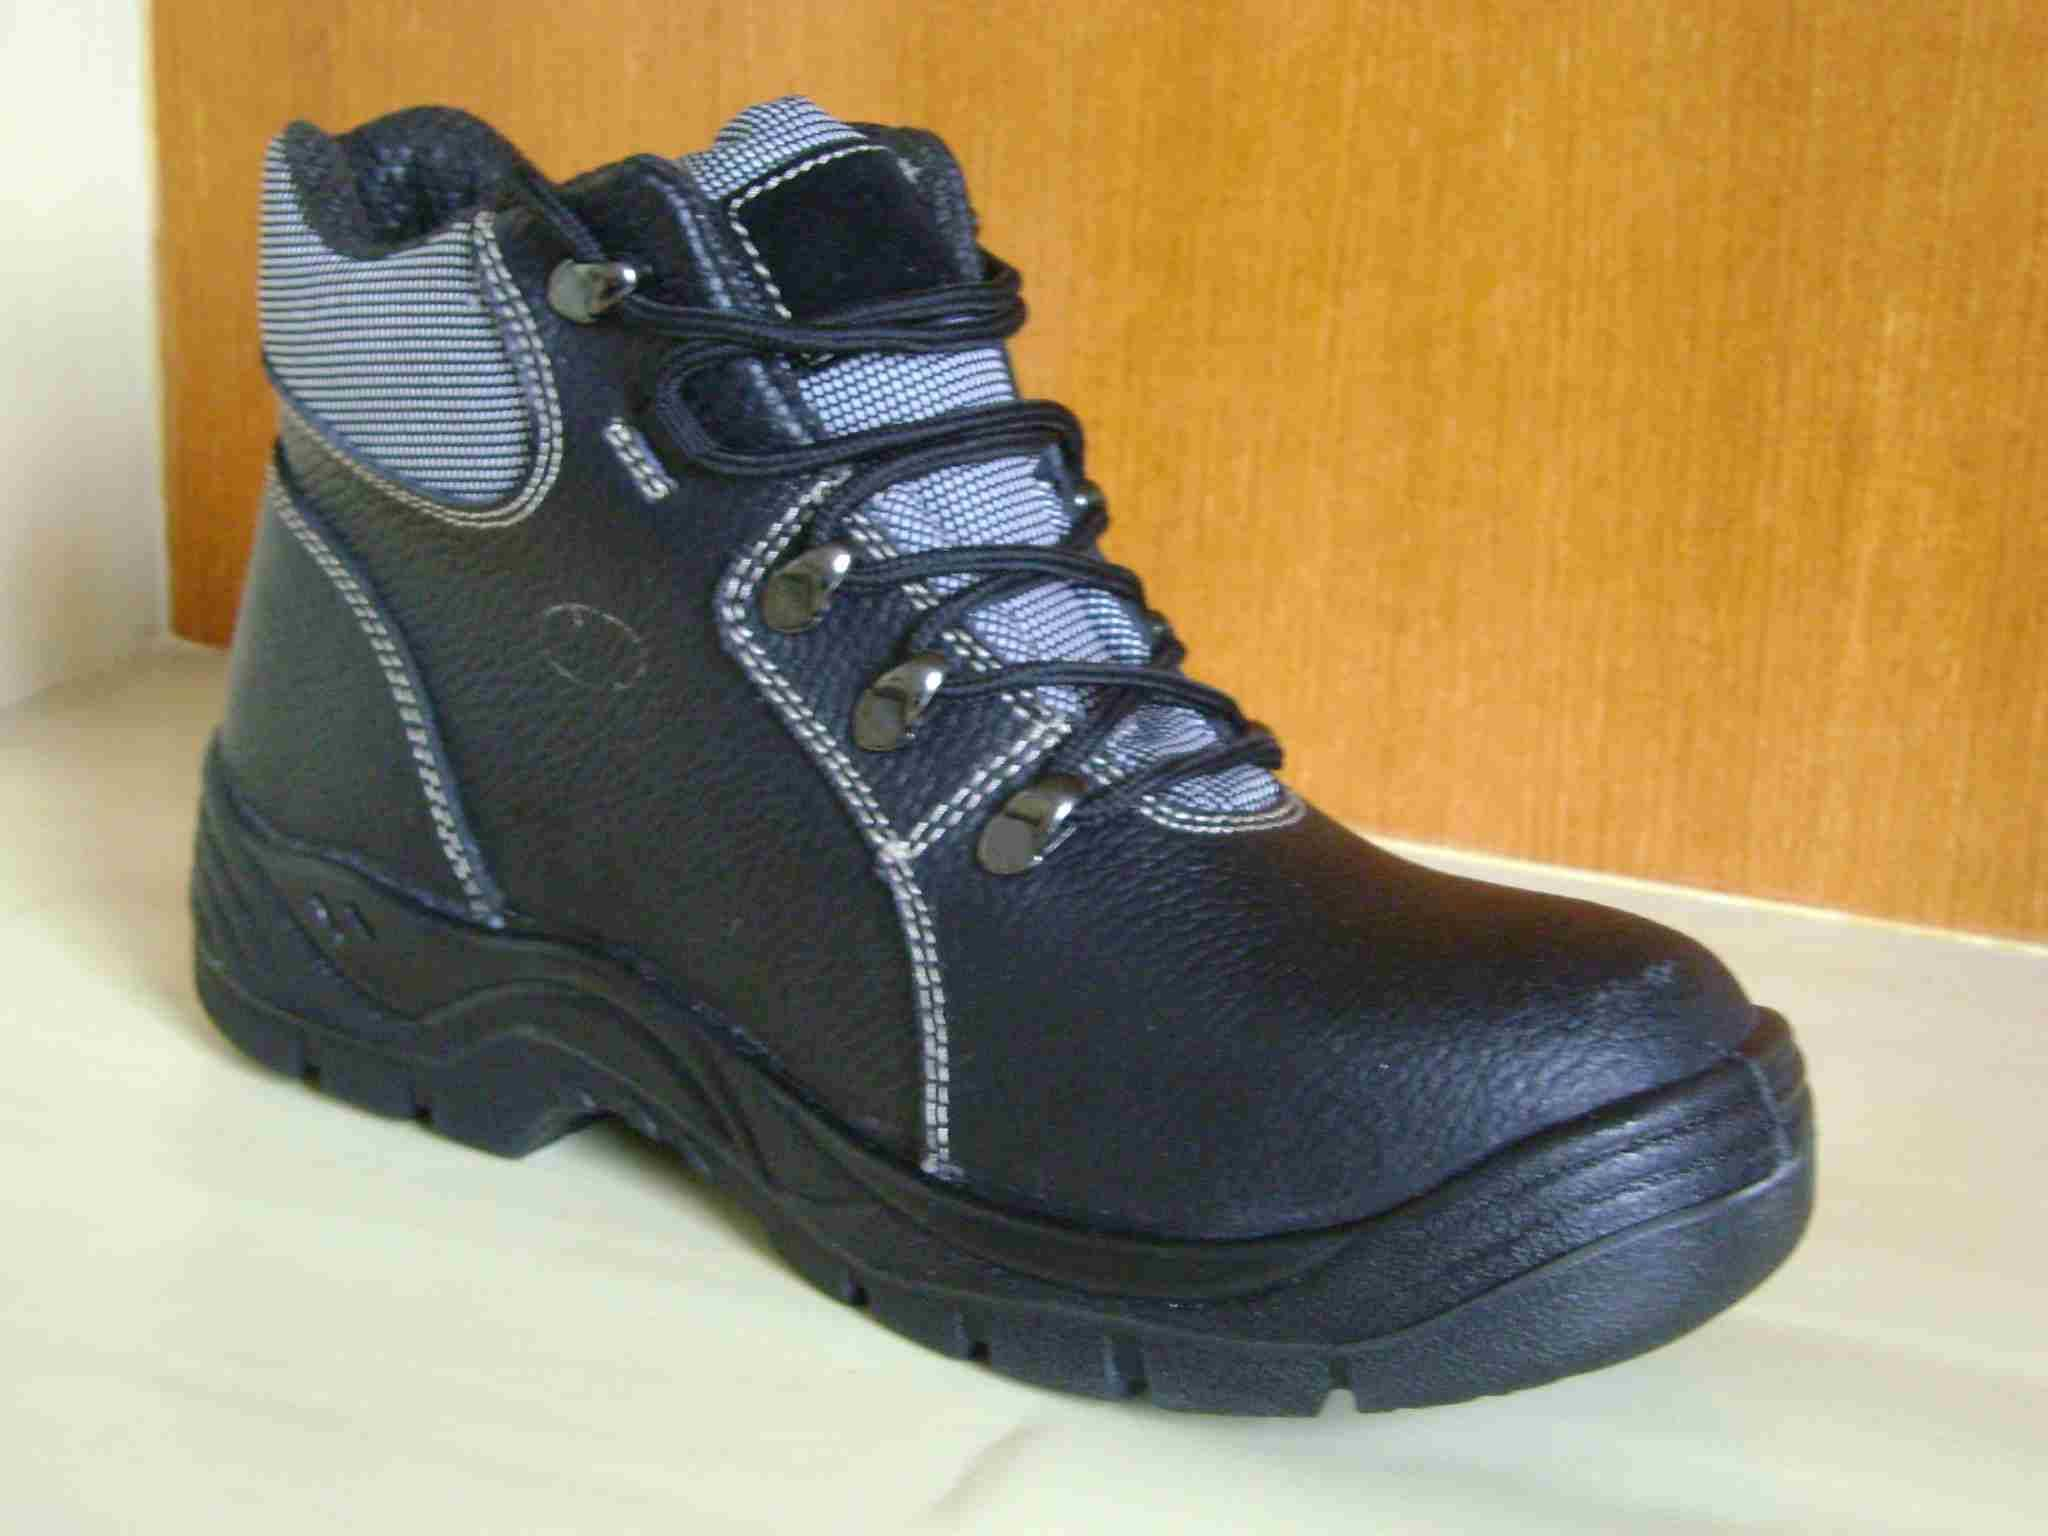 industrial safety shoes,safety footwear,security boots